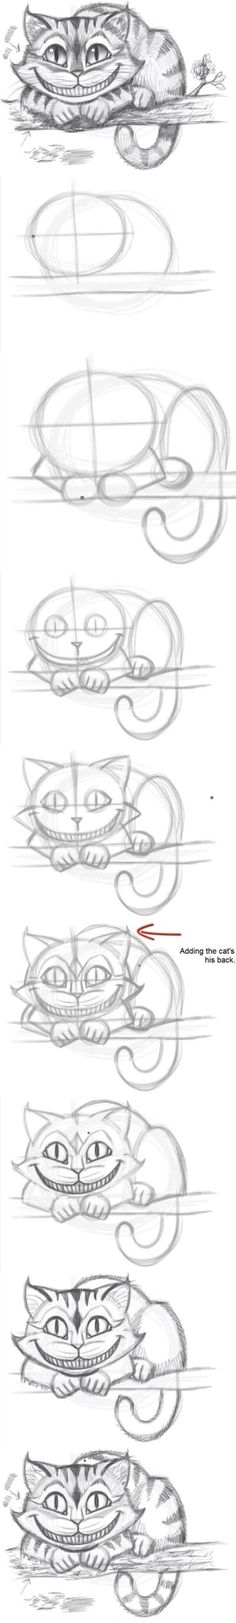 How to Draw the Cheshire Cat by usefuldiy: : ) #Drawing #Cheshire_Cat